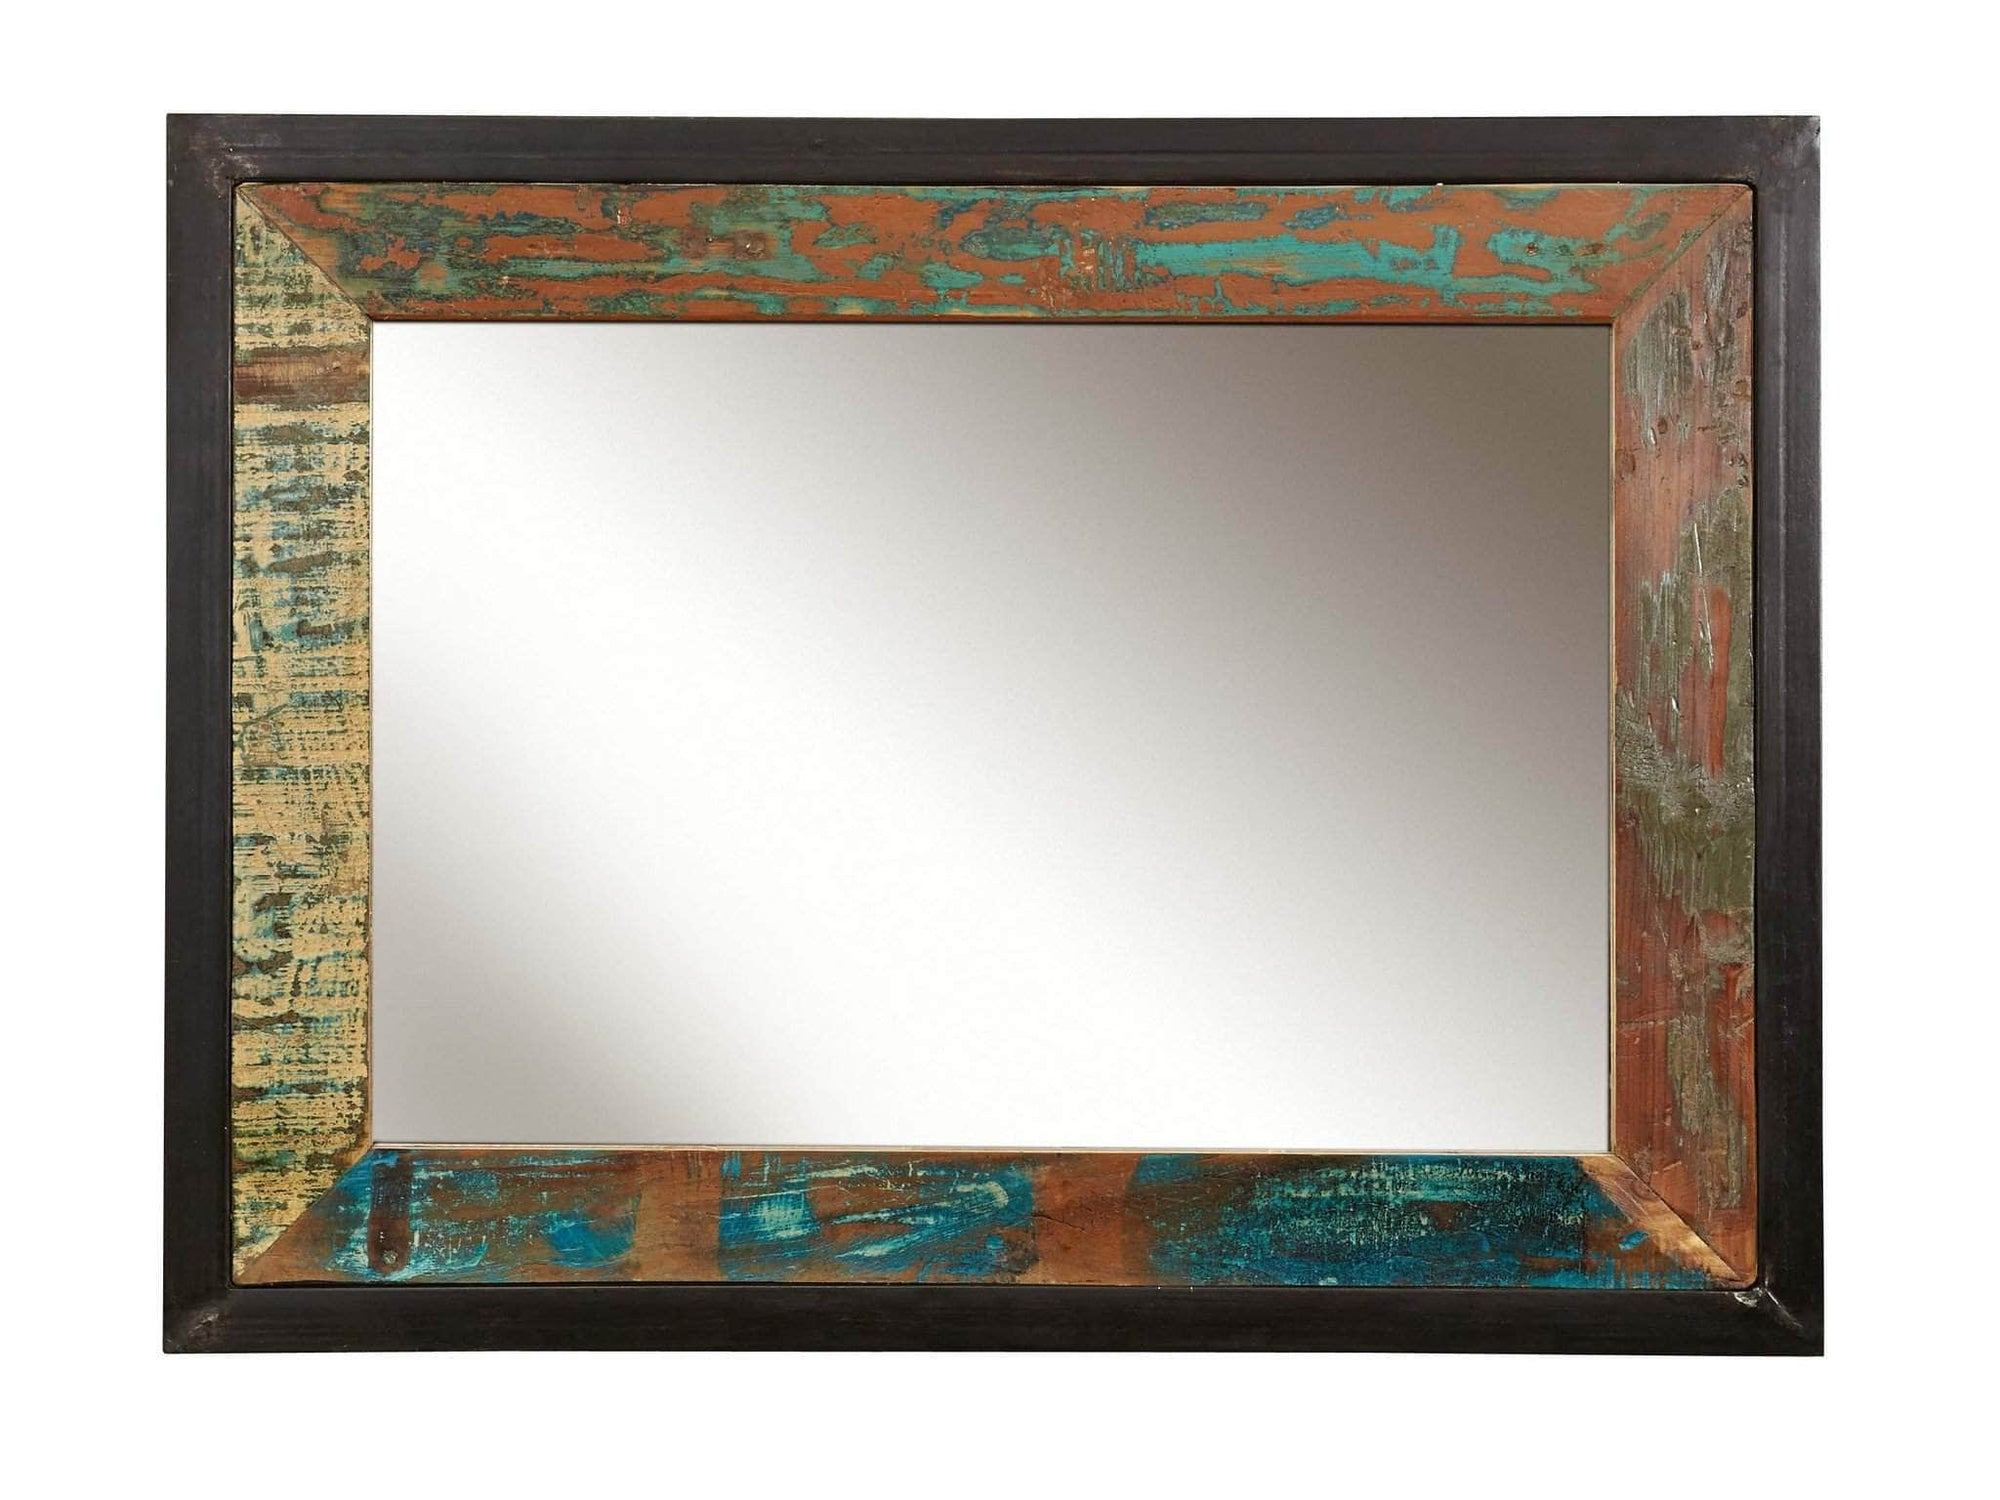 Large reclaimed wood mirror with colourful frame